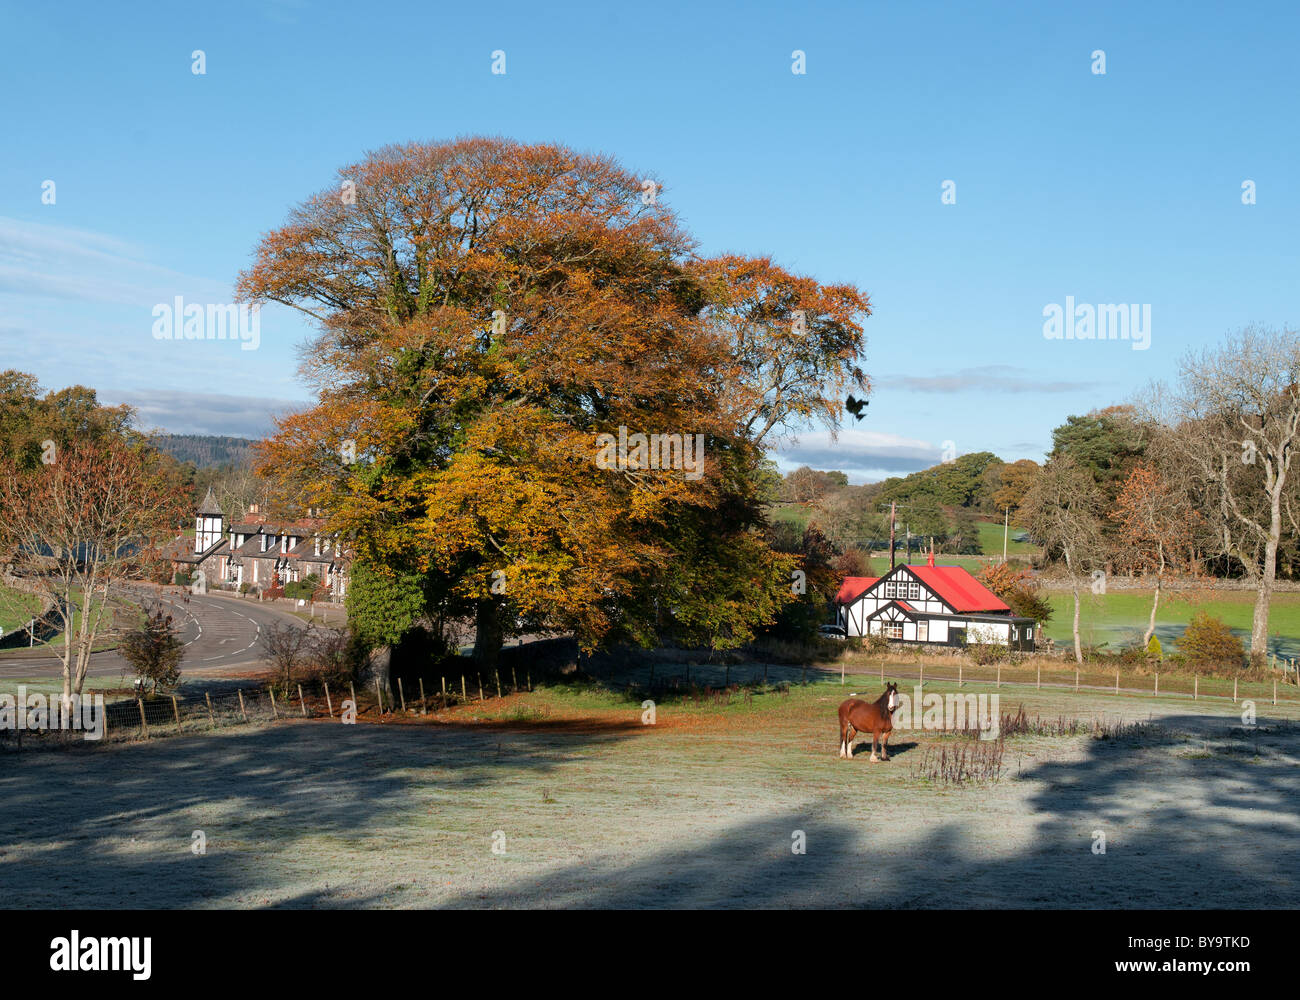 view of village of parton with red roofed village hall and Clydesdale horse in frosty weather - Stock Image